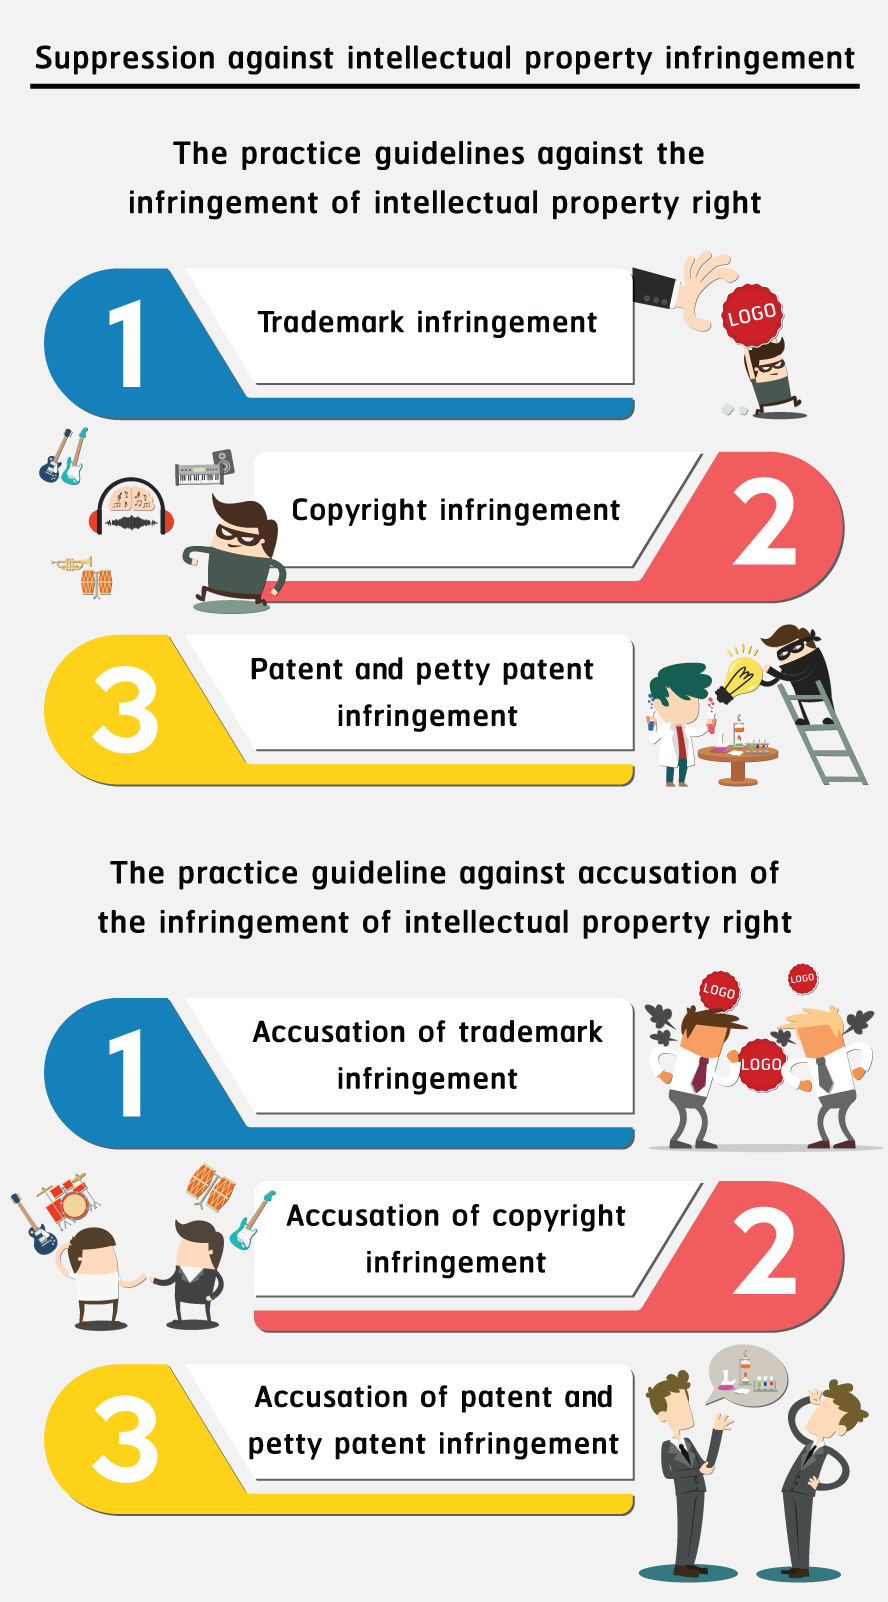 Design Suppression Against Intellectual Property Infringement